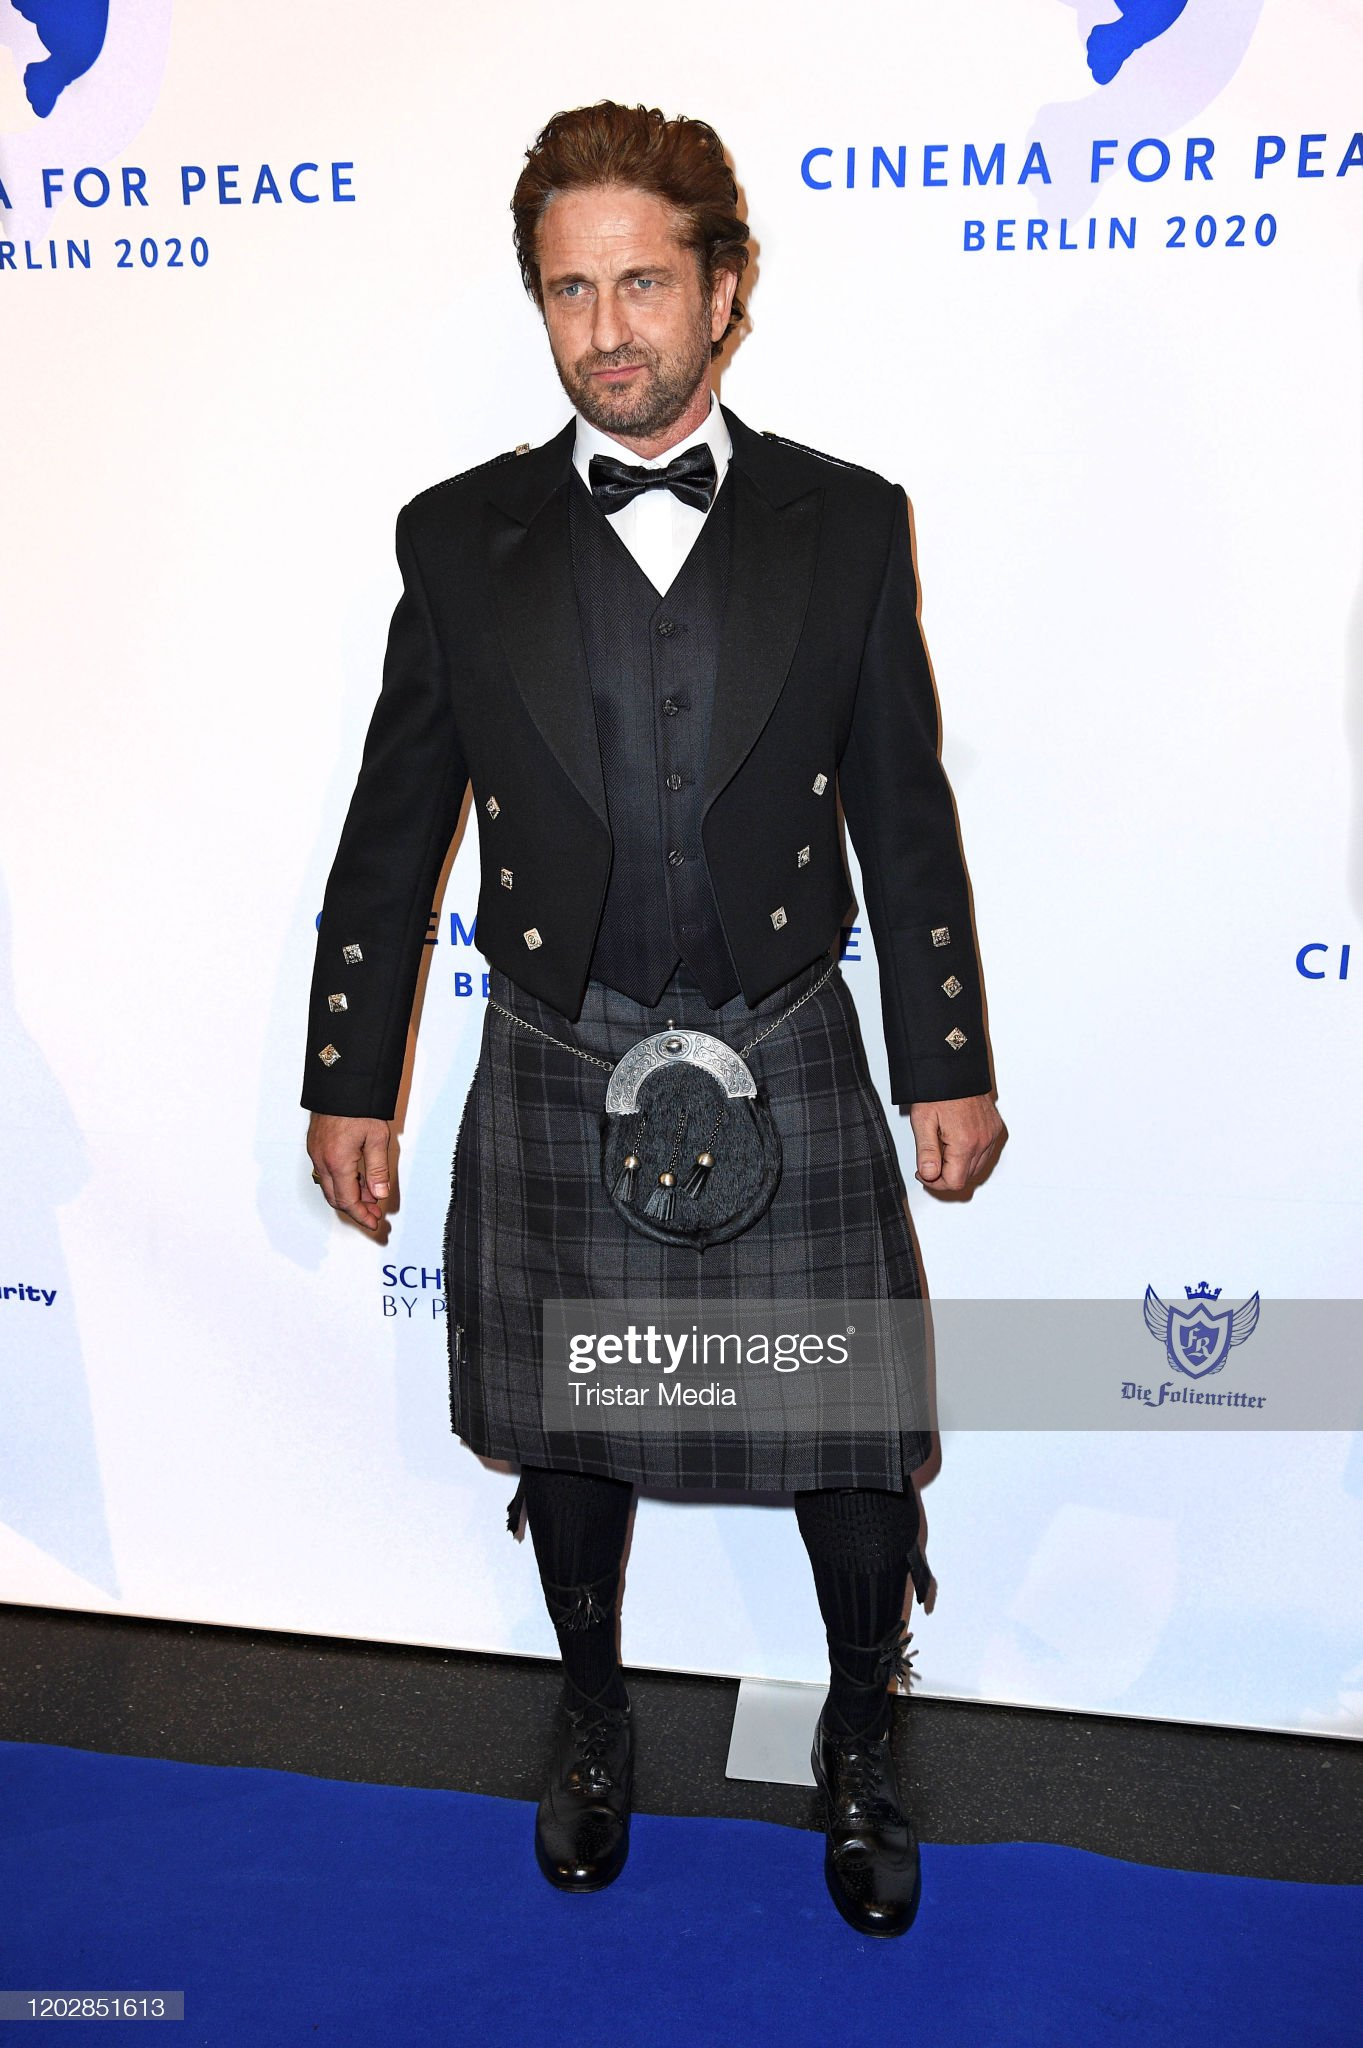 ¿Cuánto mide Gerard Butler? - Altura - Real height British-actor-gerard-butler-attends-the-cinema-for-peace-gala-2020-picture-id1202851613?s=2048x2048